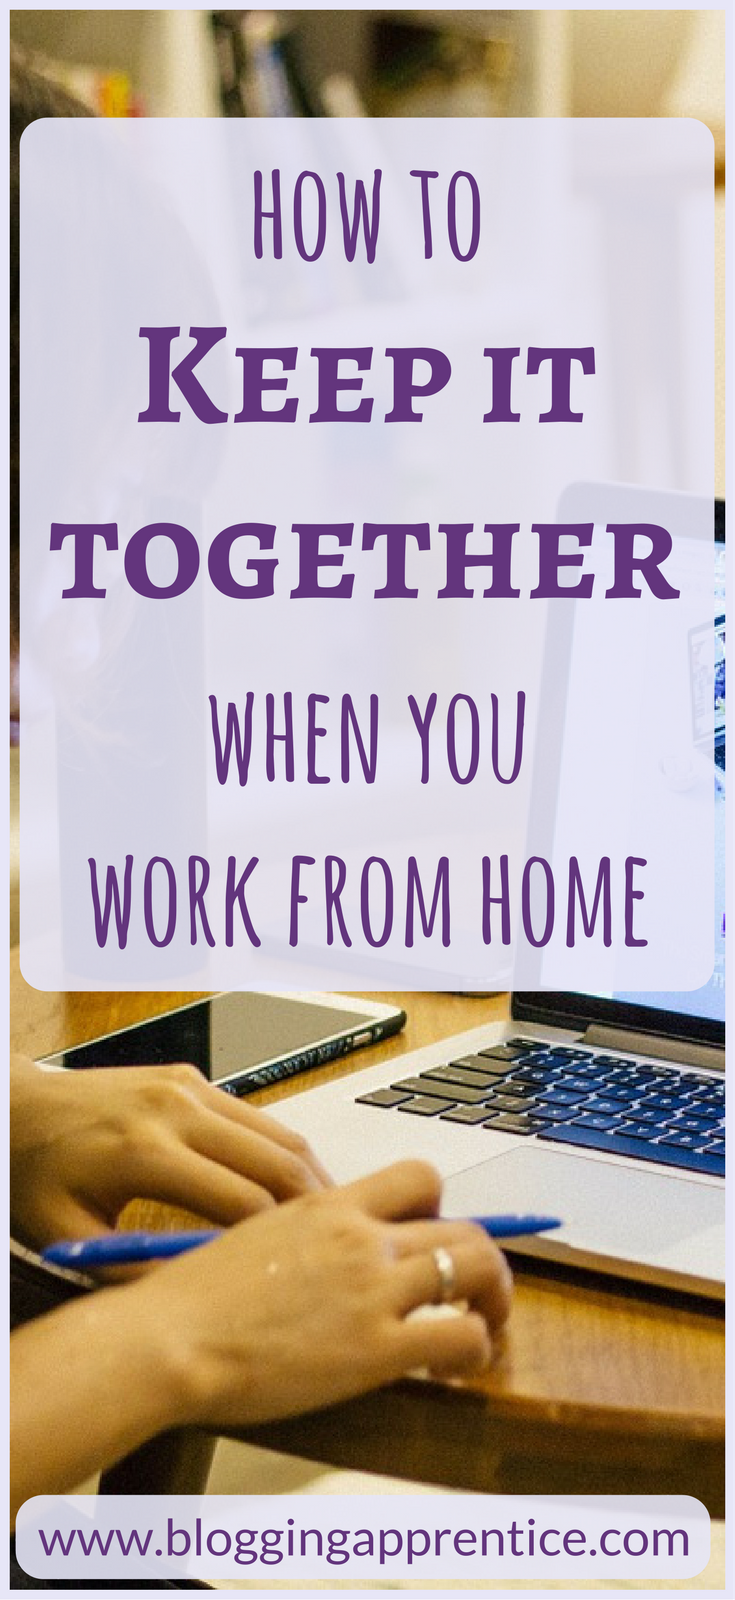 How to keep it together when you work from home? Follow these quick and actionable tips to fight the overwhelm and become more productive.